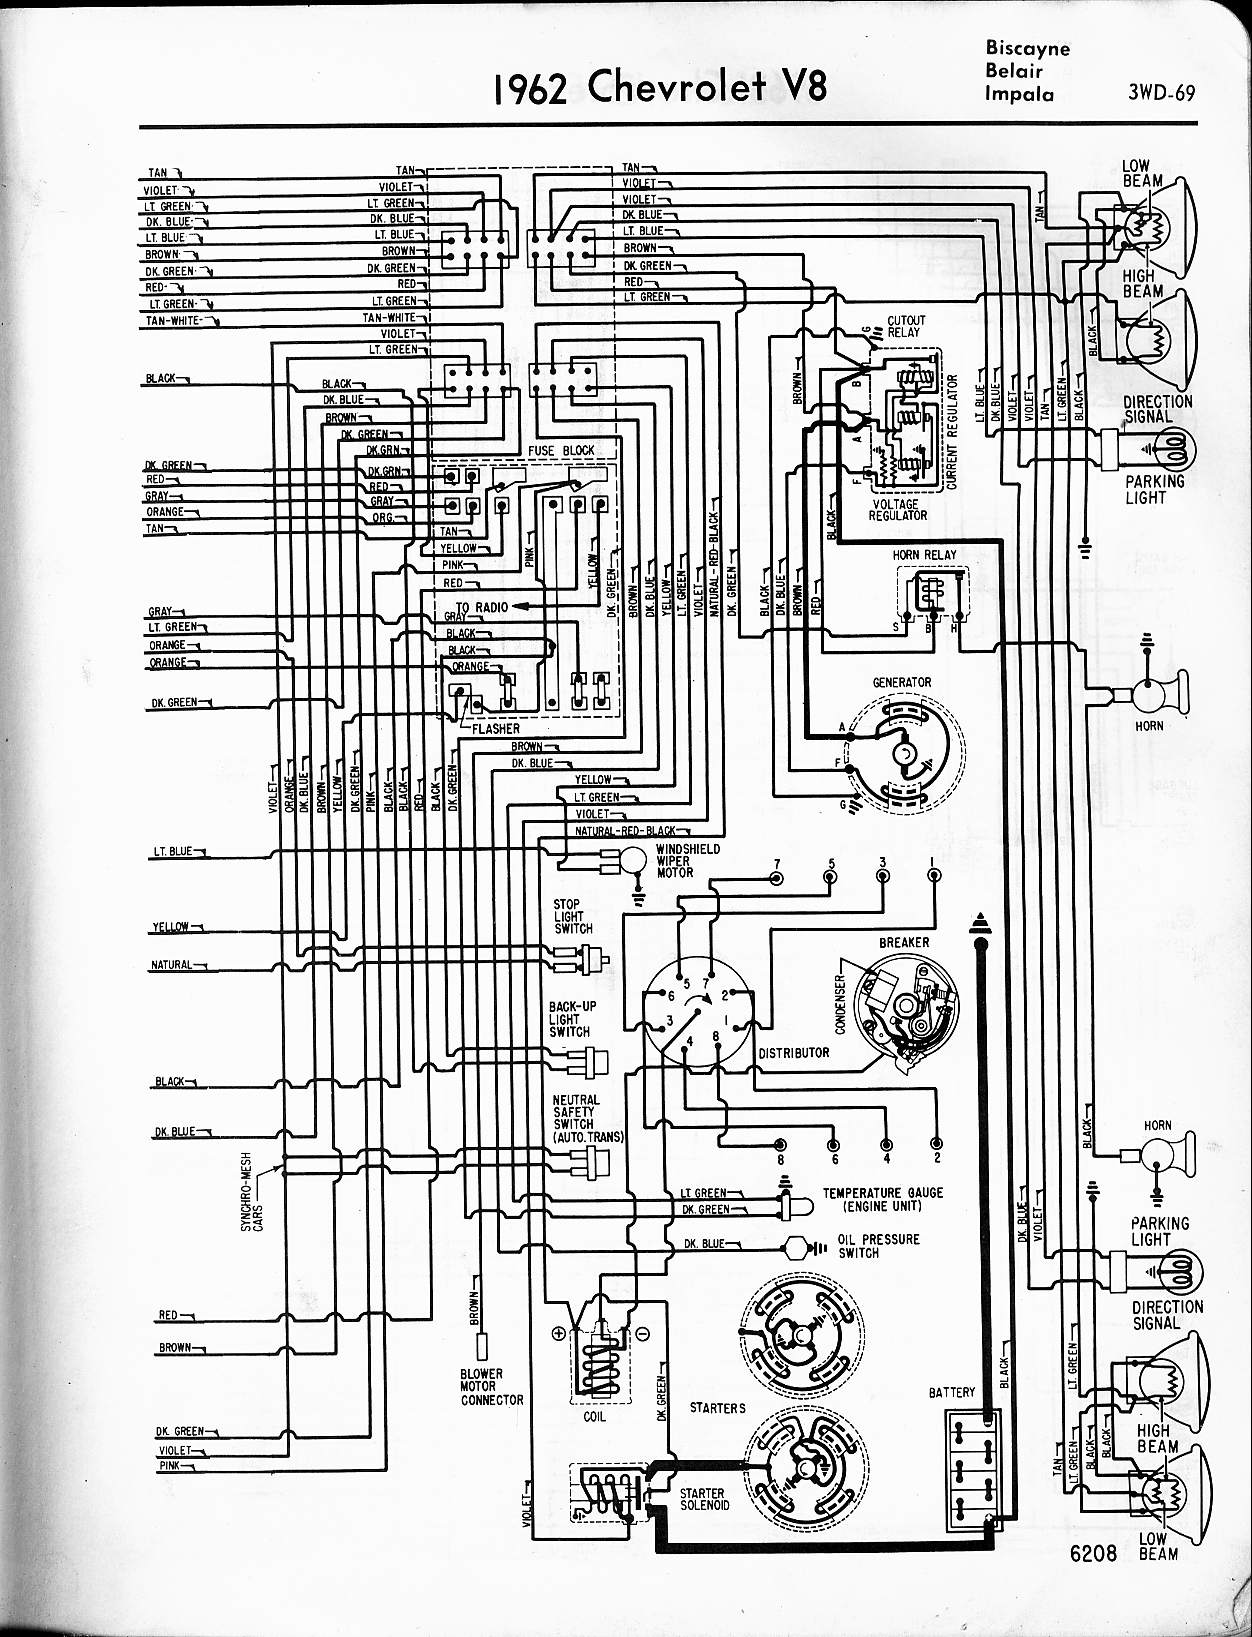 MWireChev62_3WD 069 1962 chevrolet wiring diagram manual chevytalk free 1964 impala wiring diagram at n-0.co